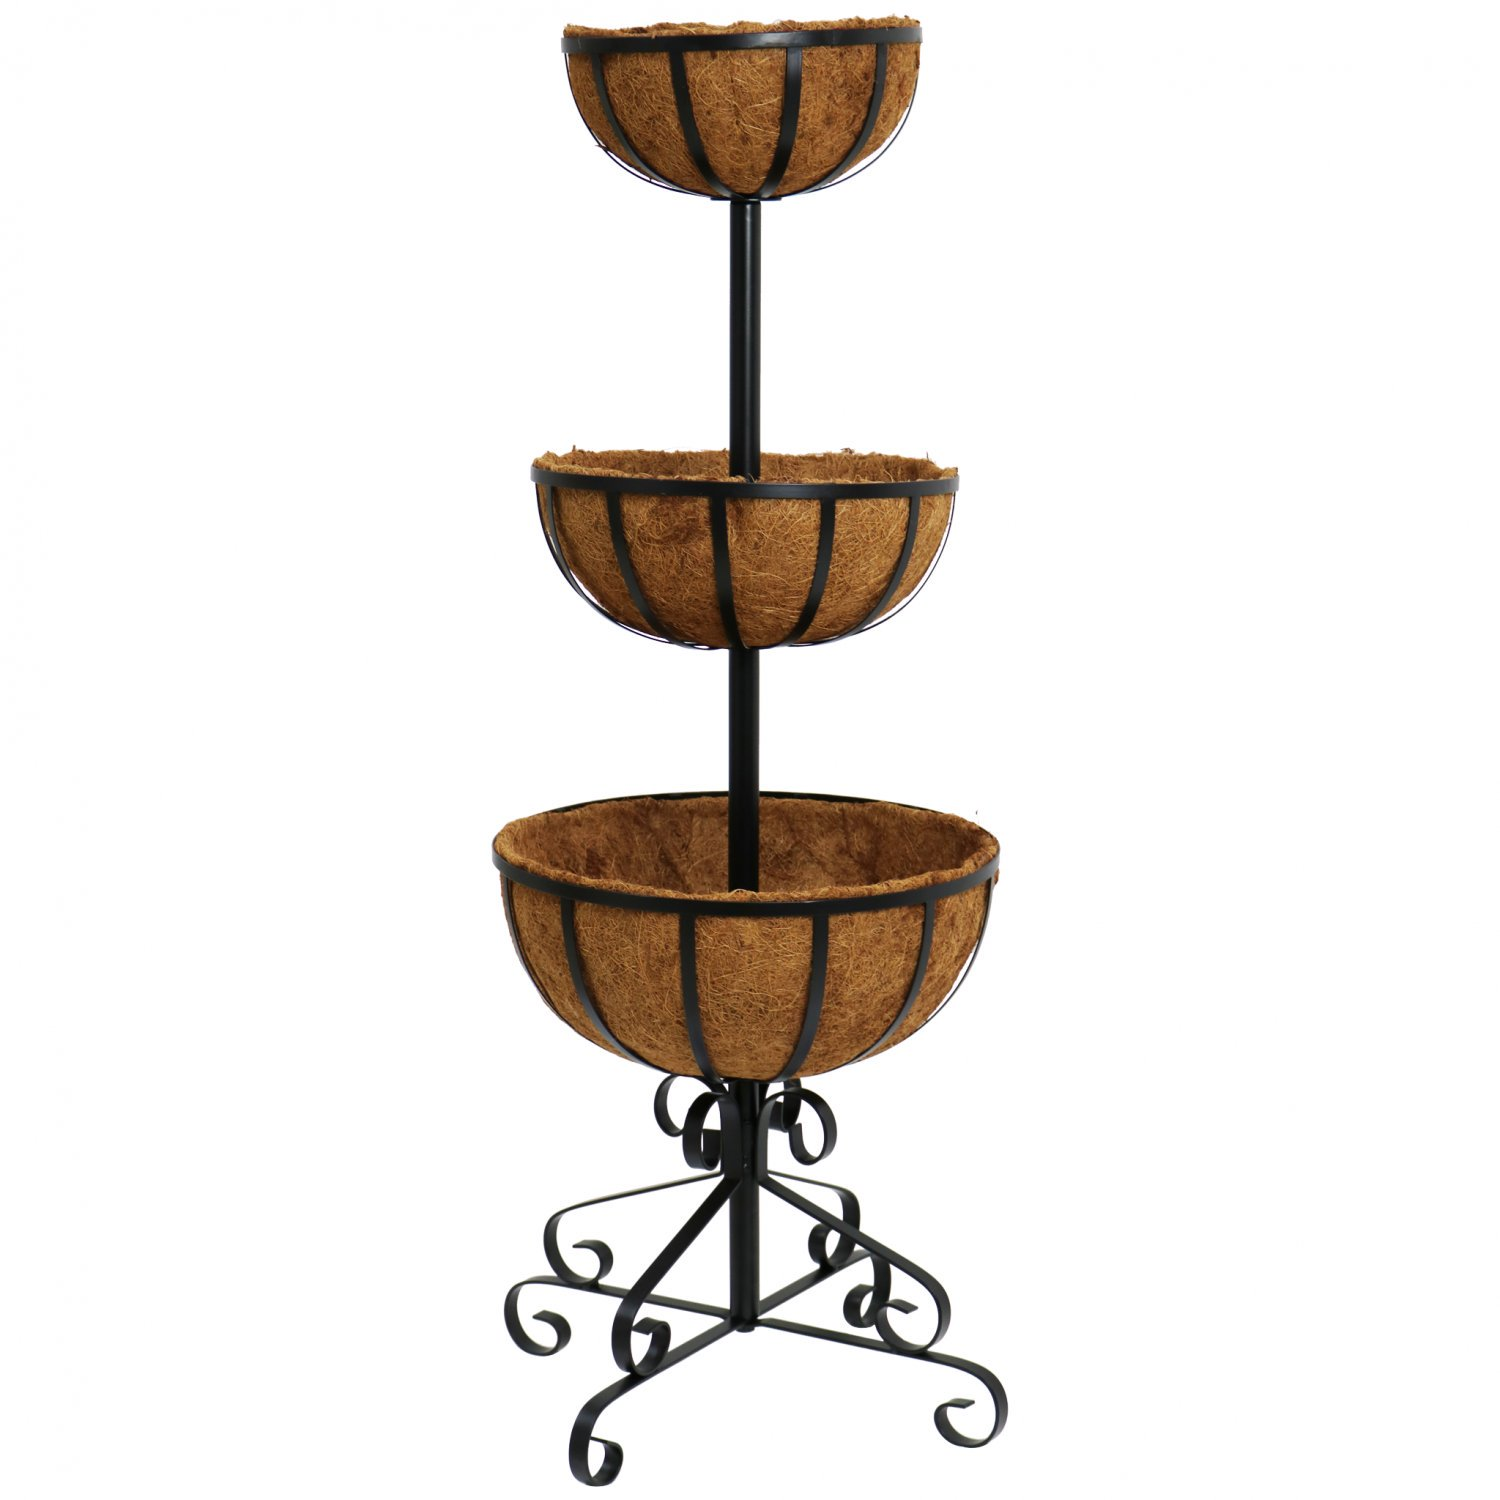 3 Tier Metal Garden Flower Fountain Plant Display Stand